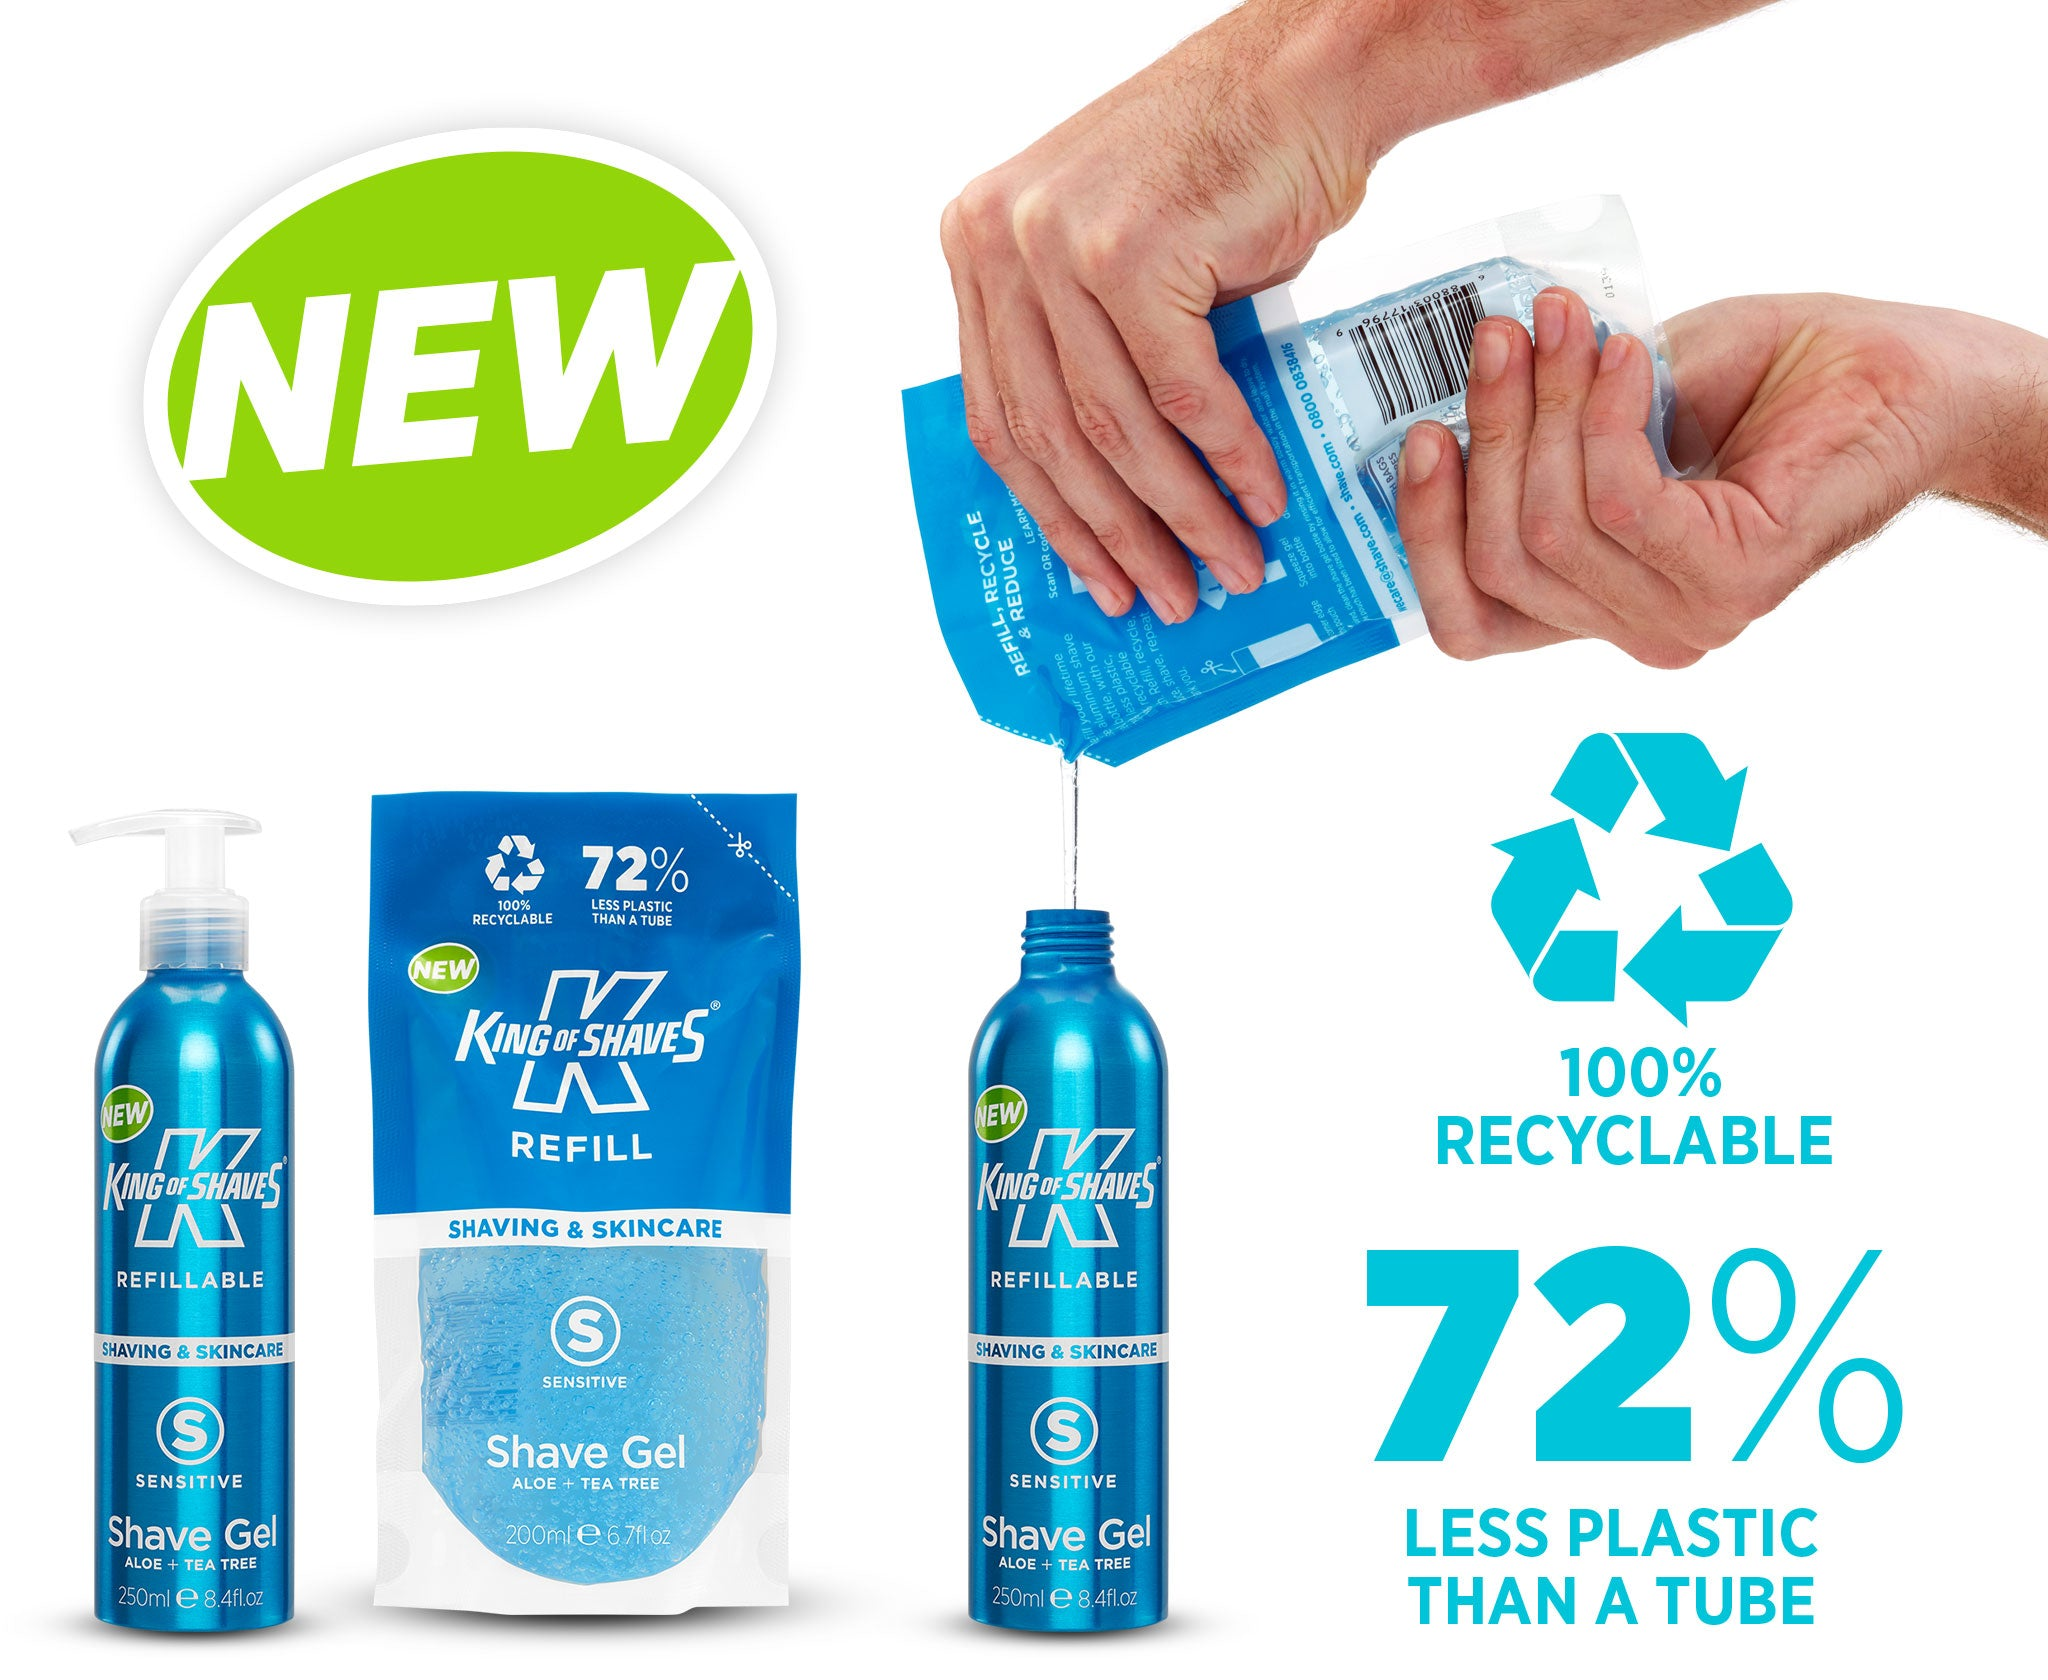 Upgrade to our refillable lifetime use Shave Gel aluminium bottle and recyclable Refill pouch